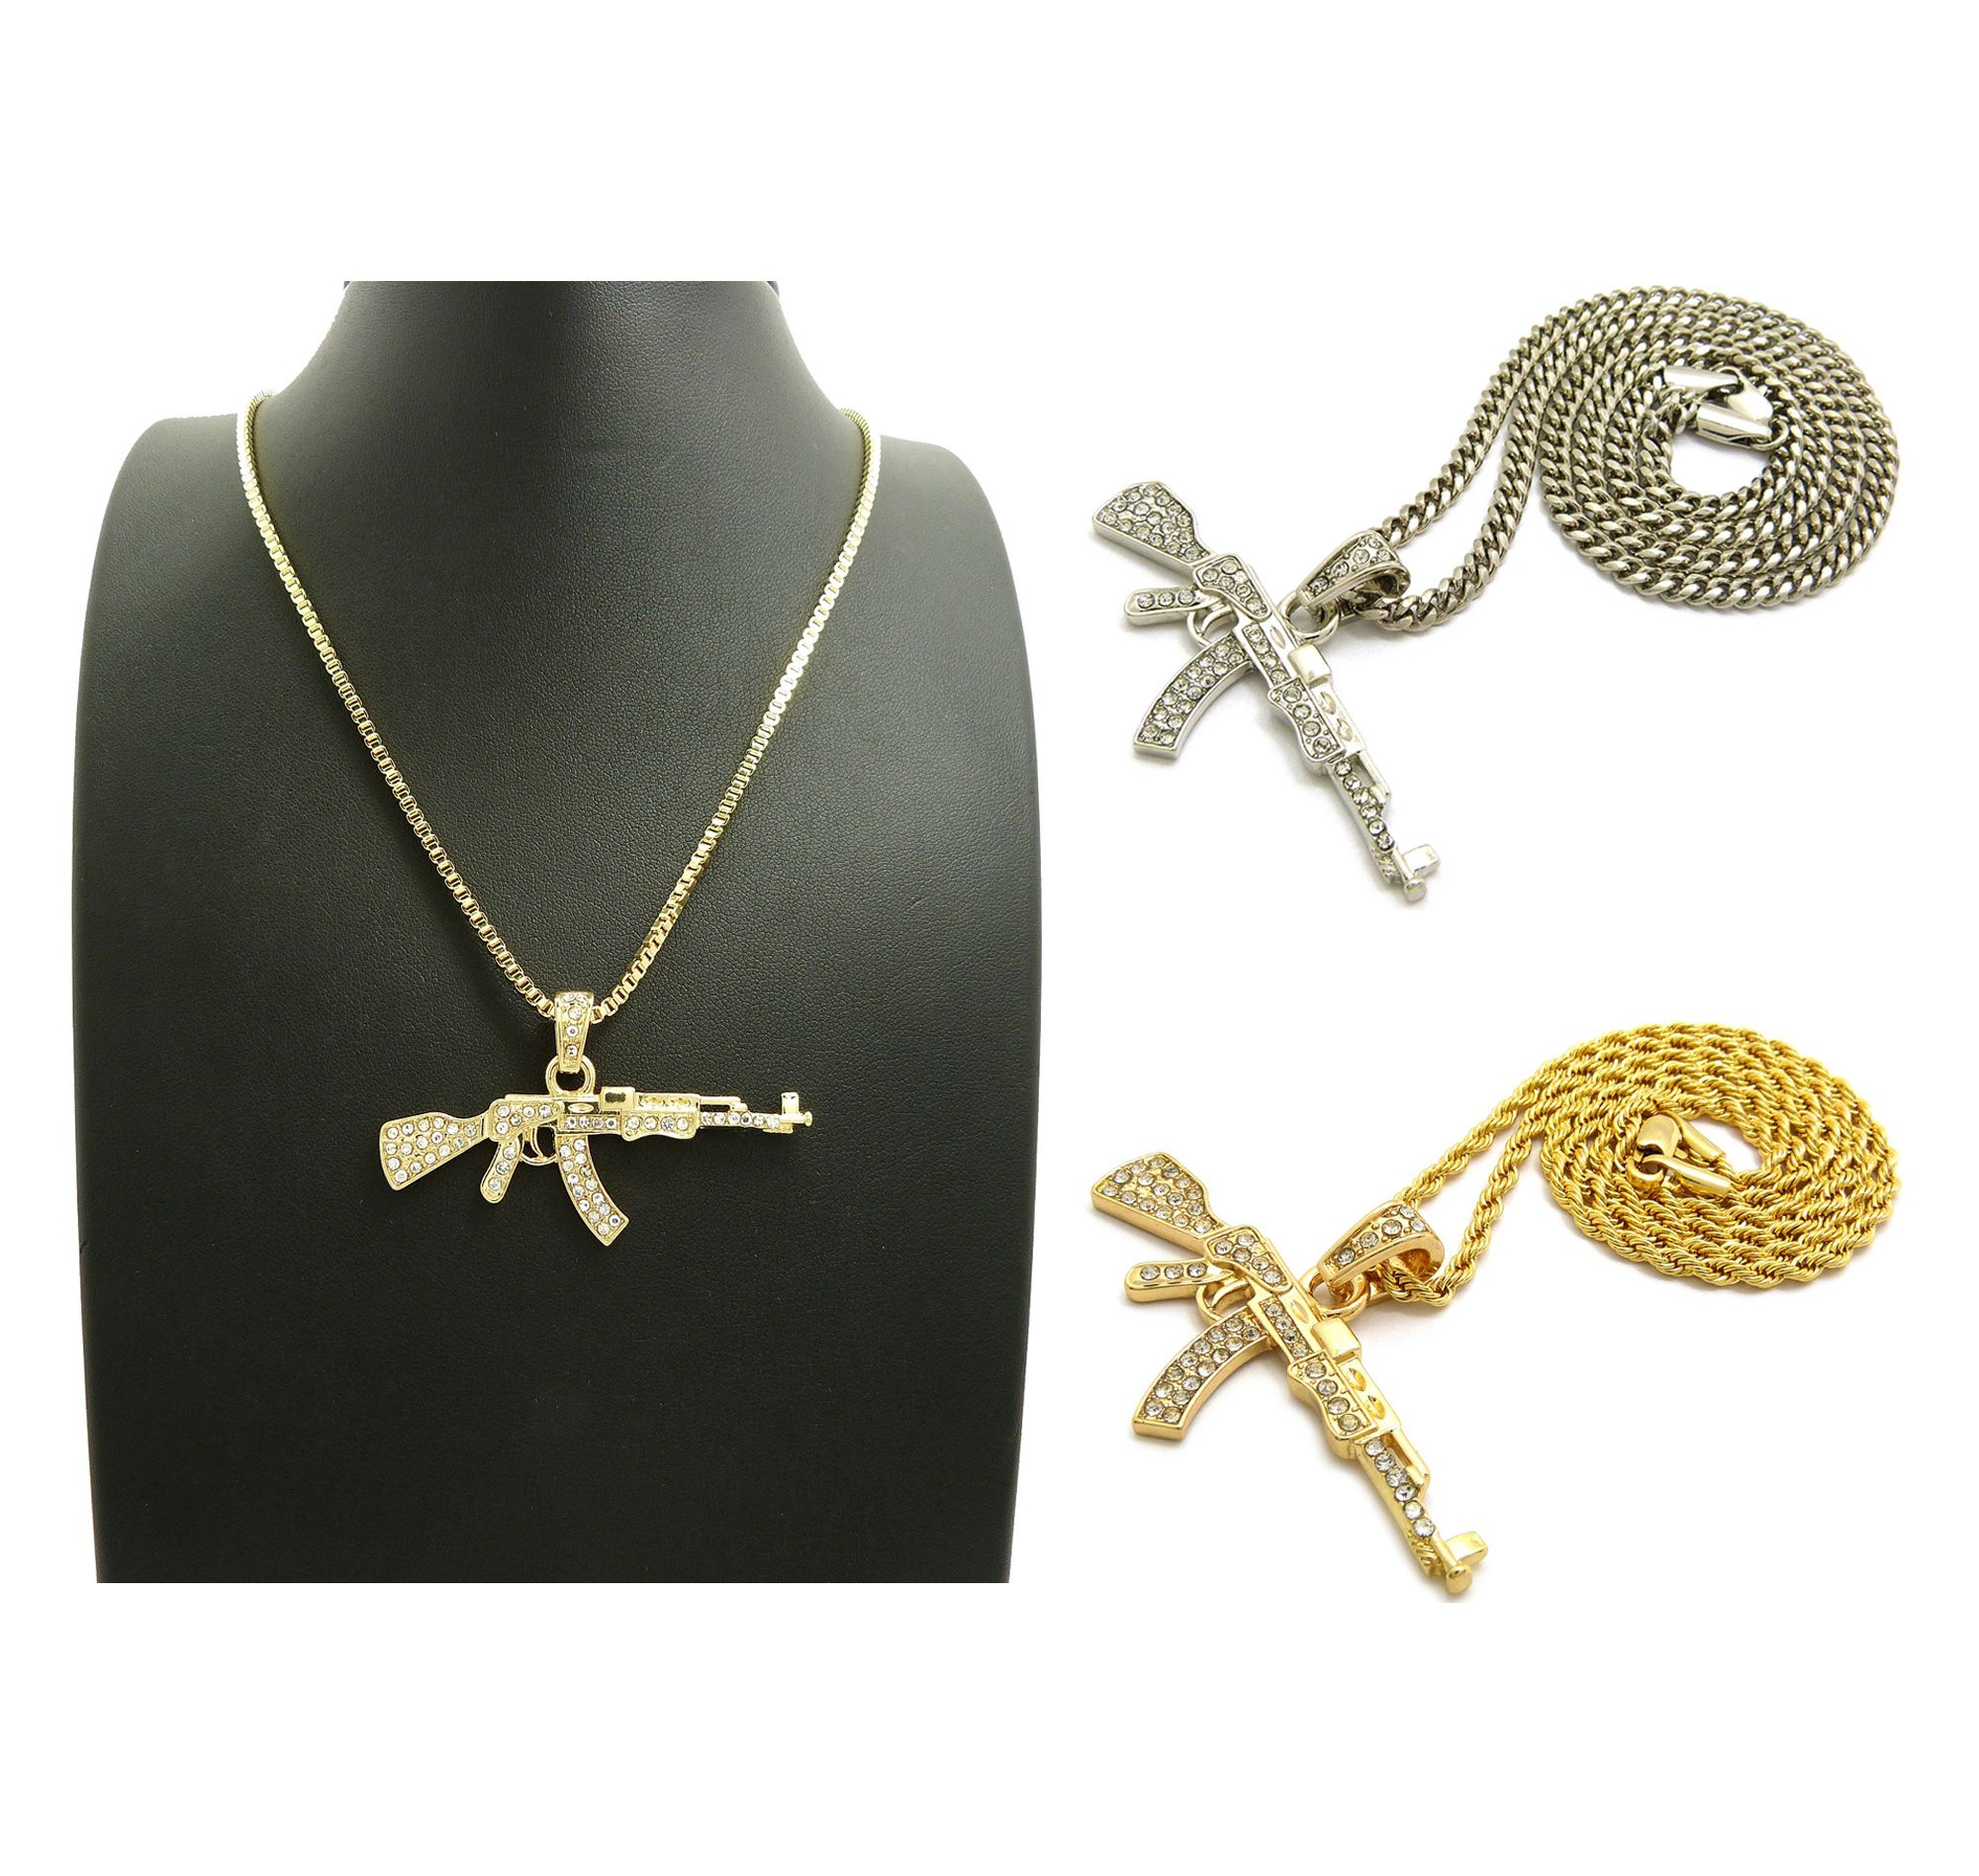 New iced out ak47 pendant 24 boxcubanrope chain hip hop iced out ak47 pendant hip hop necklaces aloadofball Images